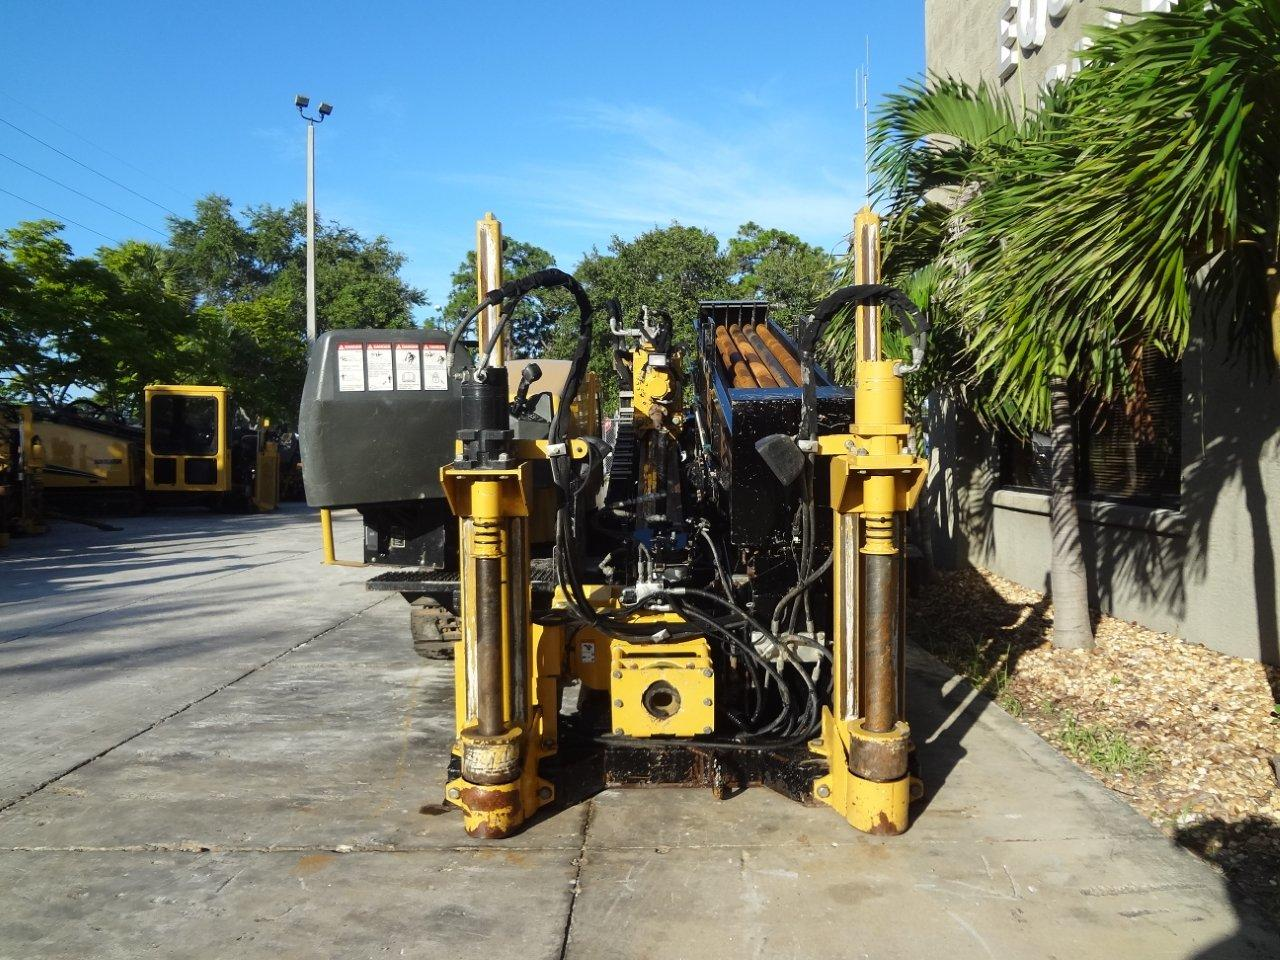 Find directional drills and other utility equipment like this Vermeer from Garner Equipment.